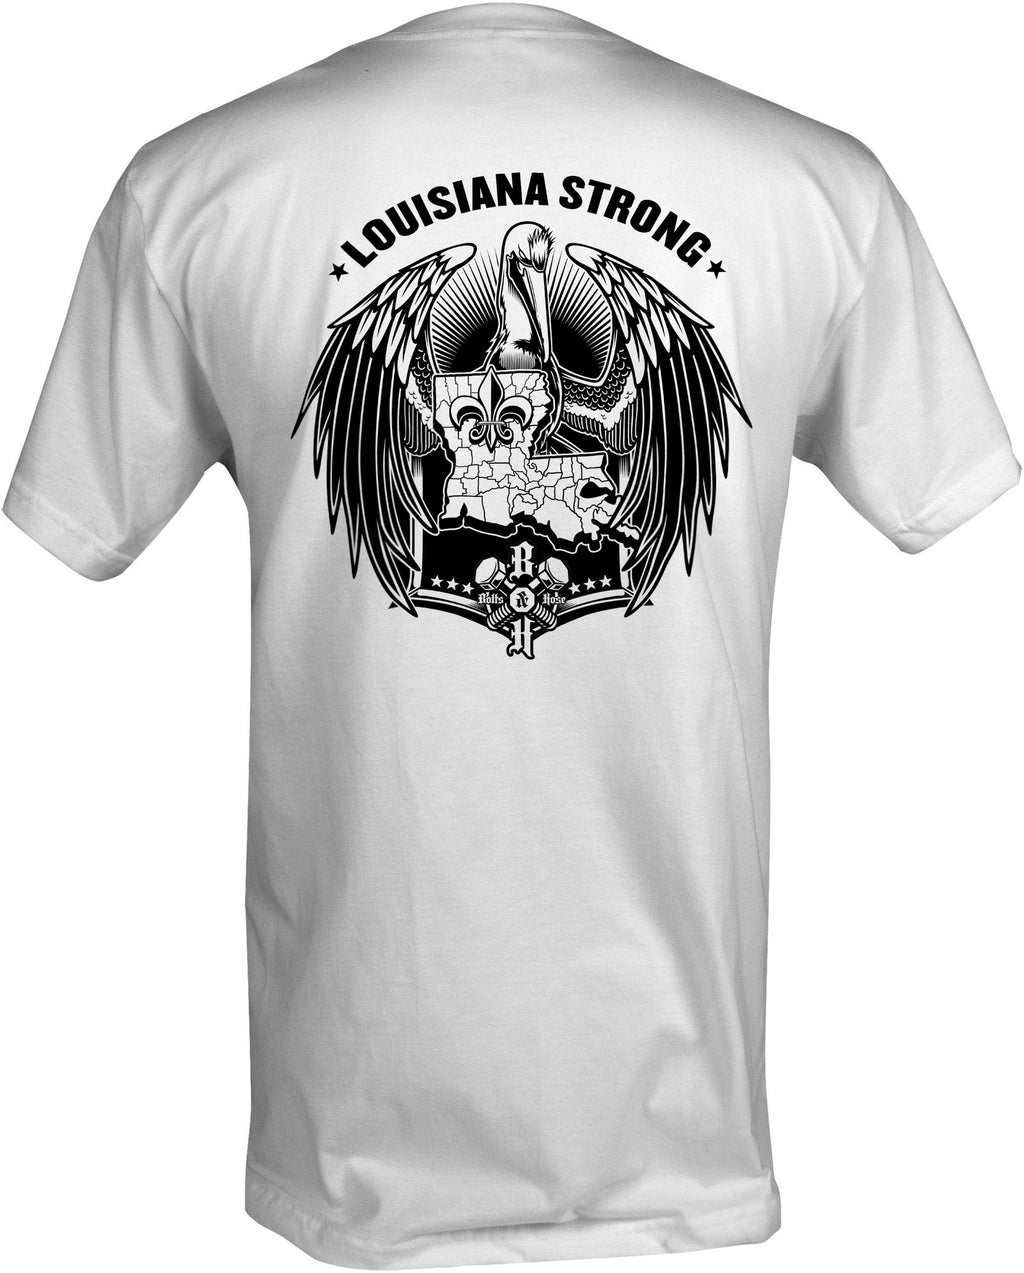 Louisiana Strong (Men's Regular Tee Black)